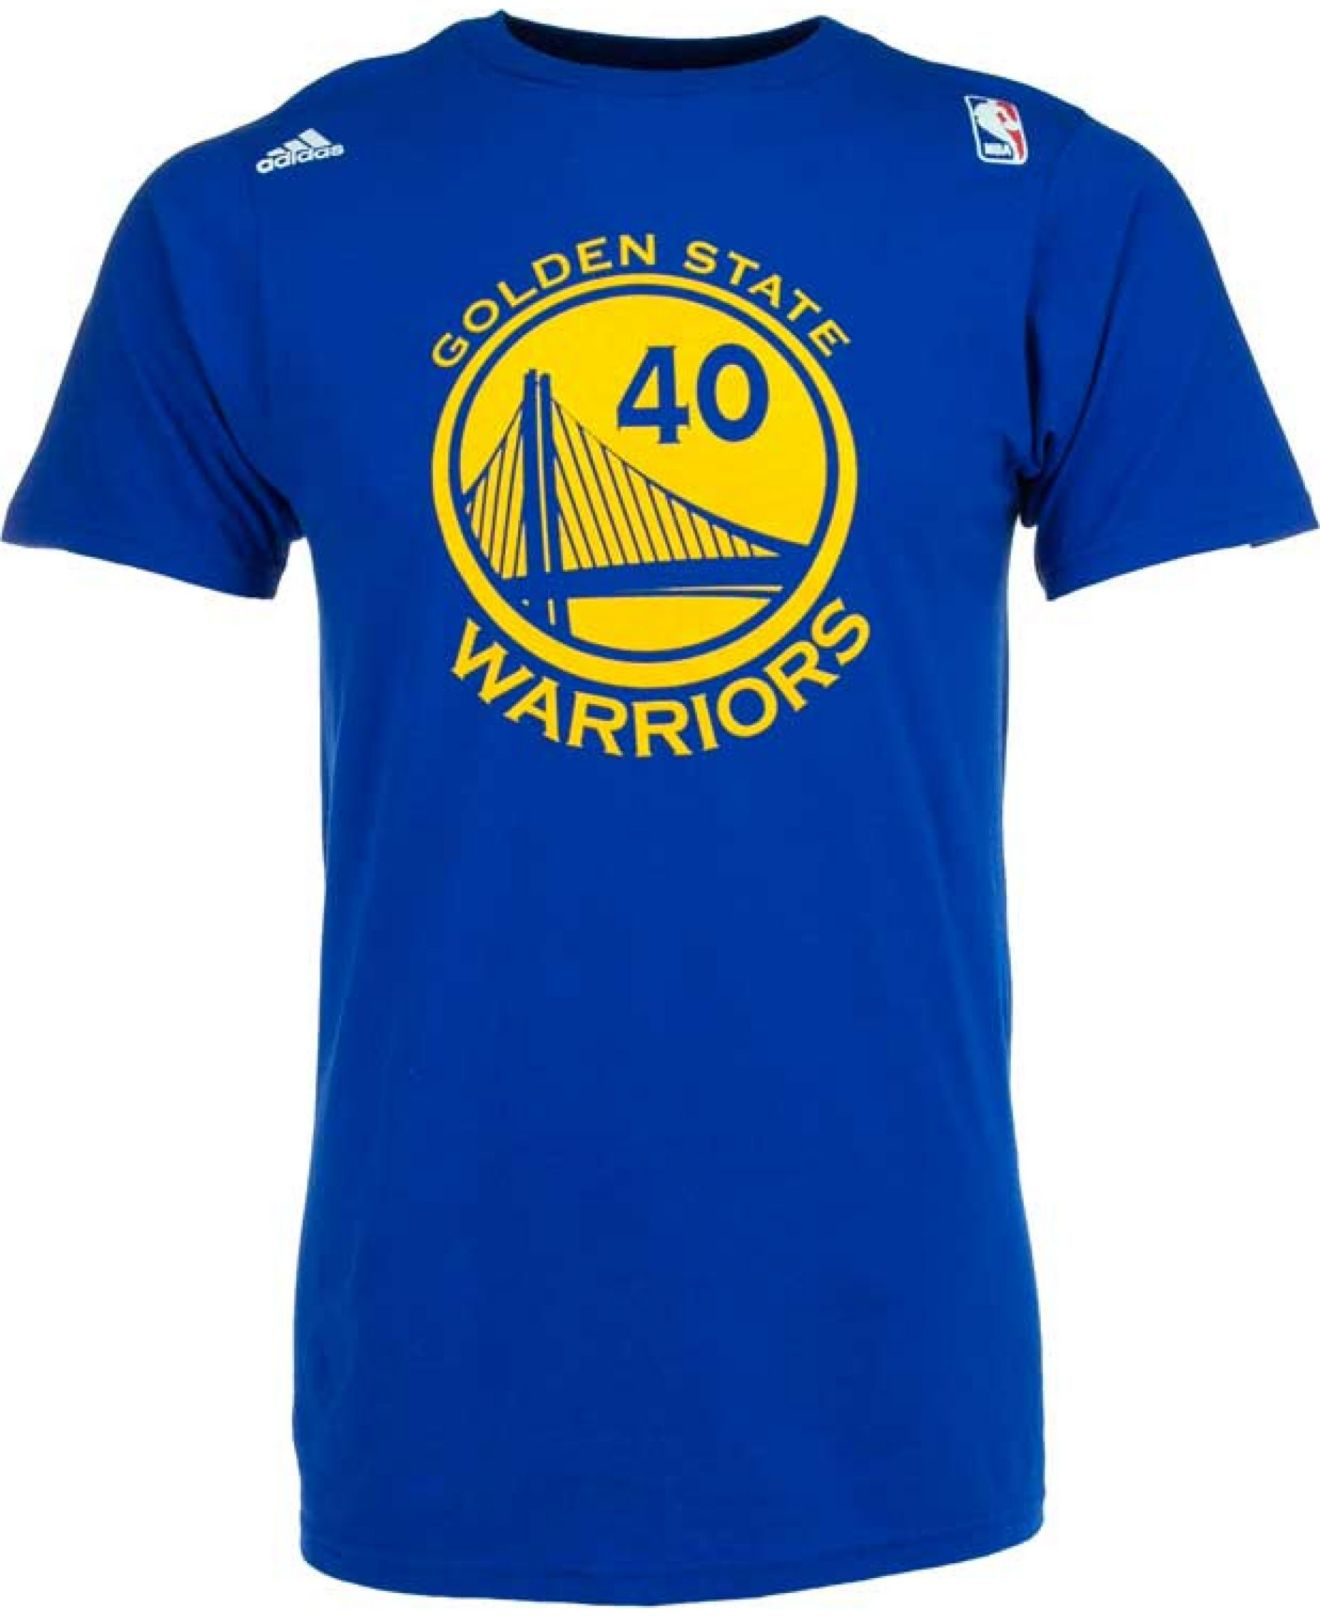 cd7f4c03f Lyst - adidas Originals Men s Short-sleeve Harrison Barnes Golden ...